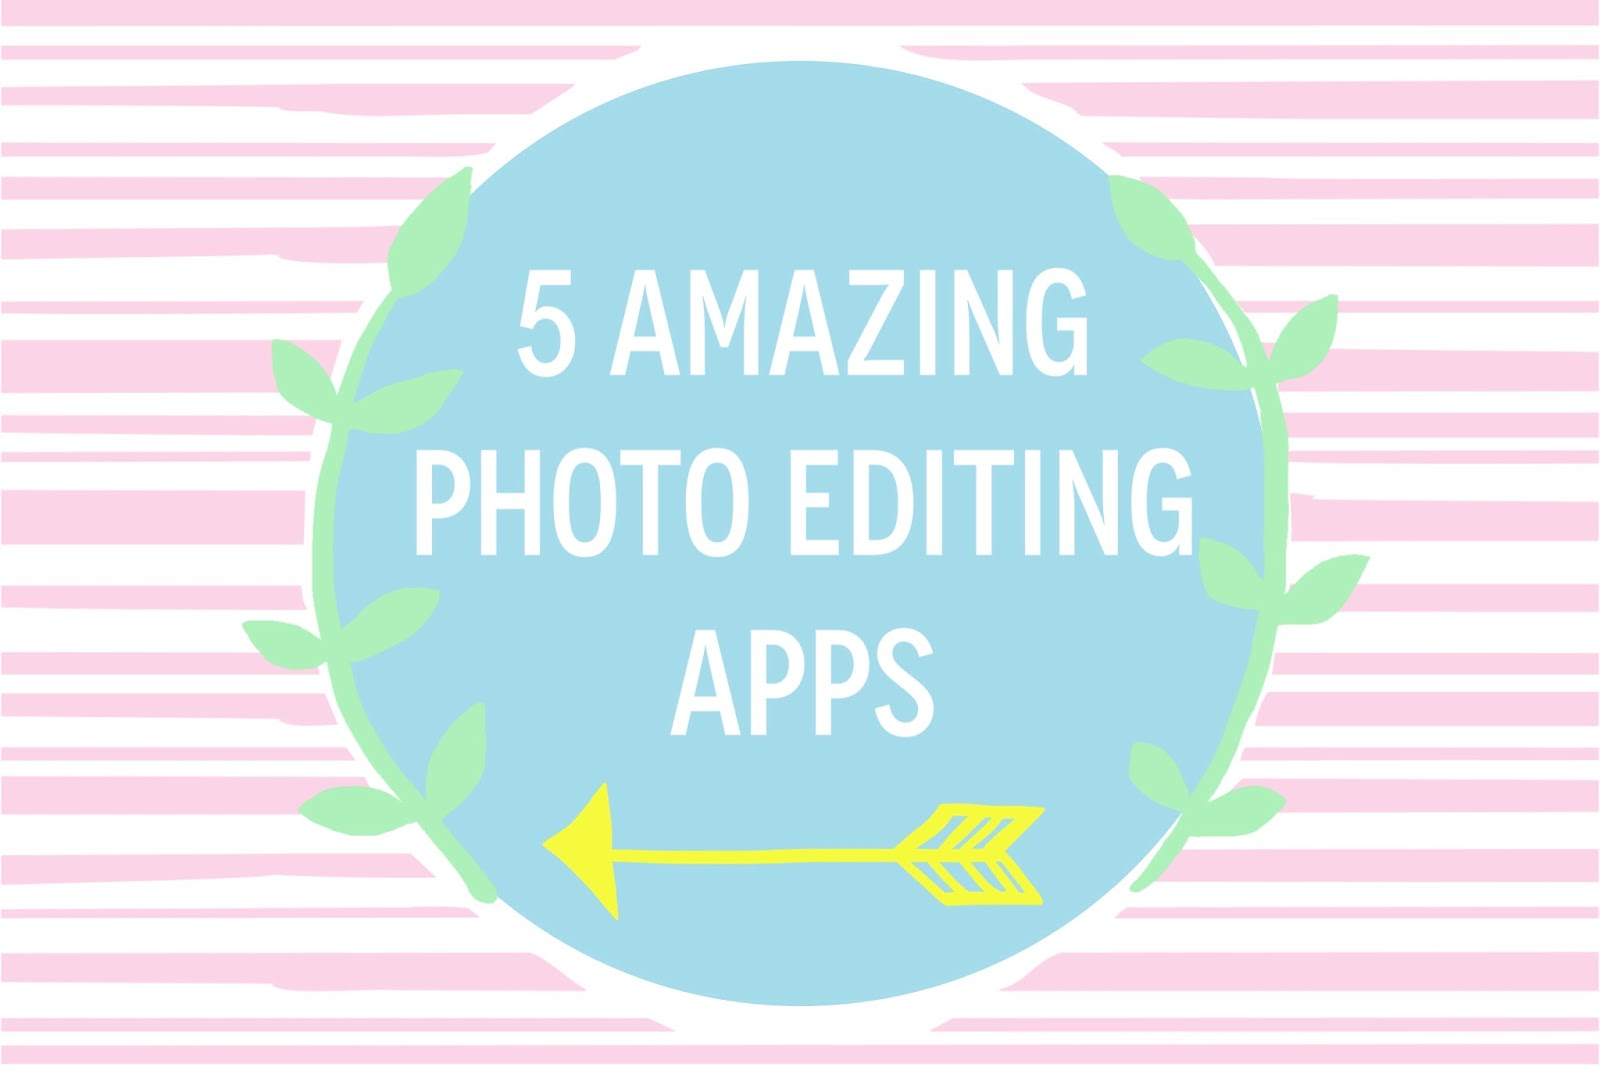 5 photo editing apps you need in your life, best photo editing apps